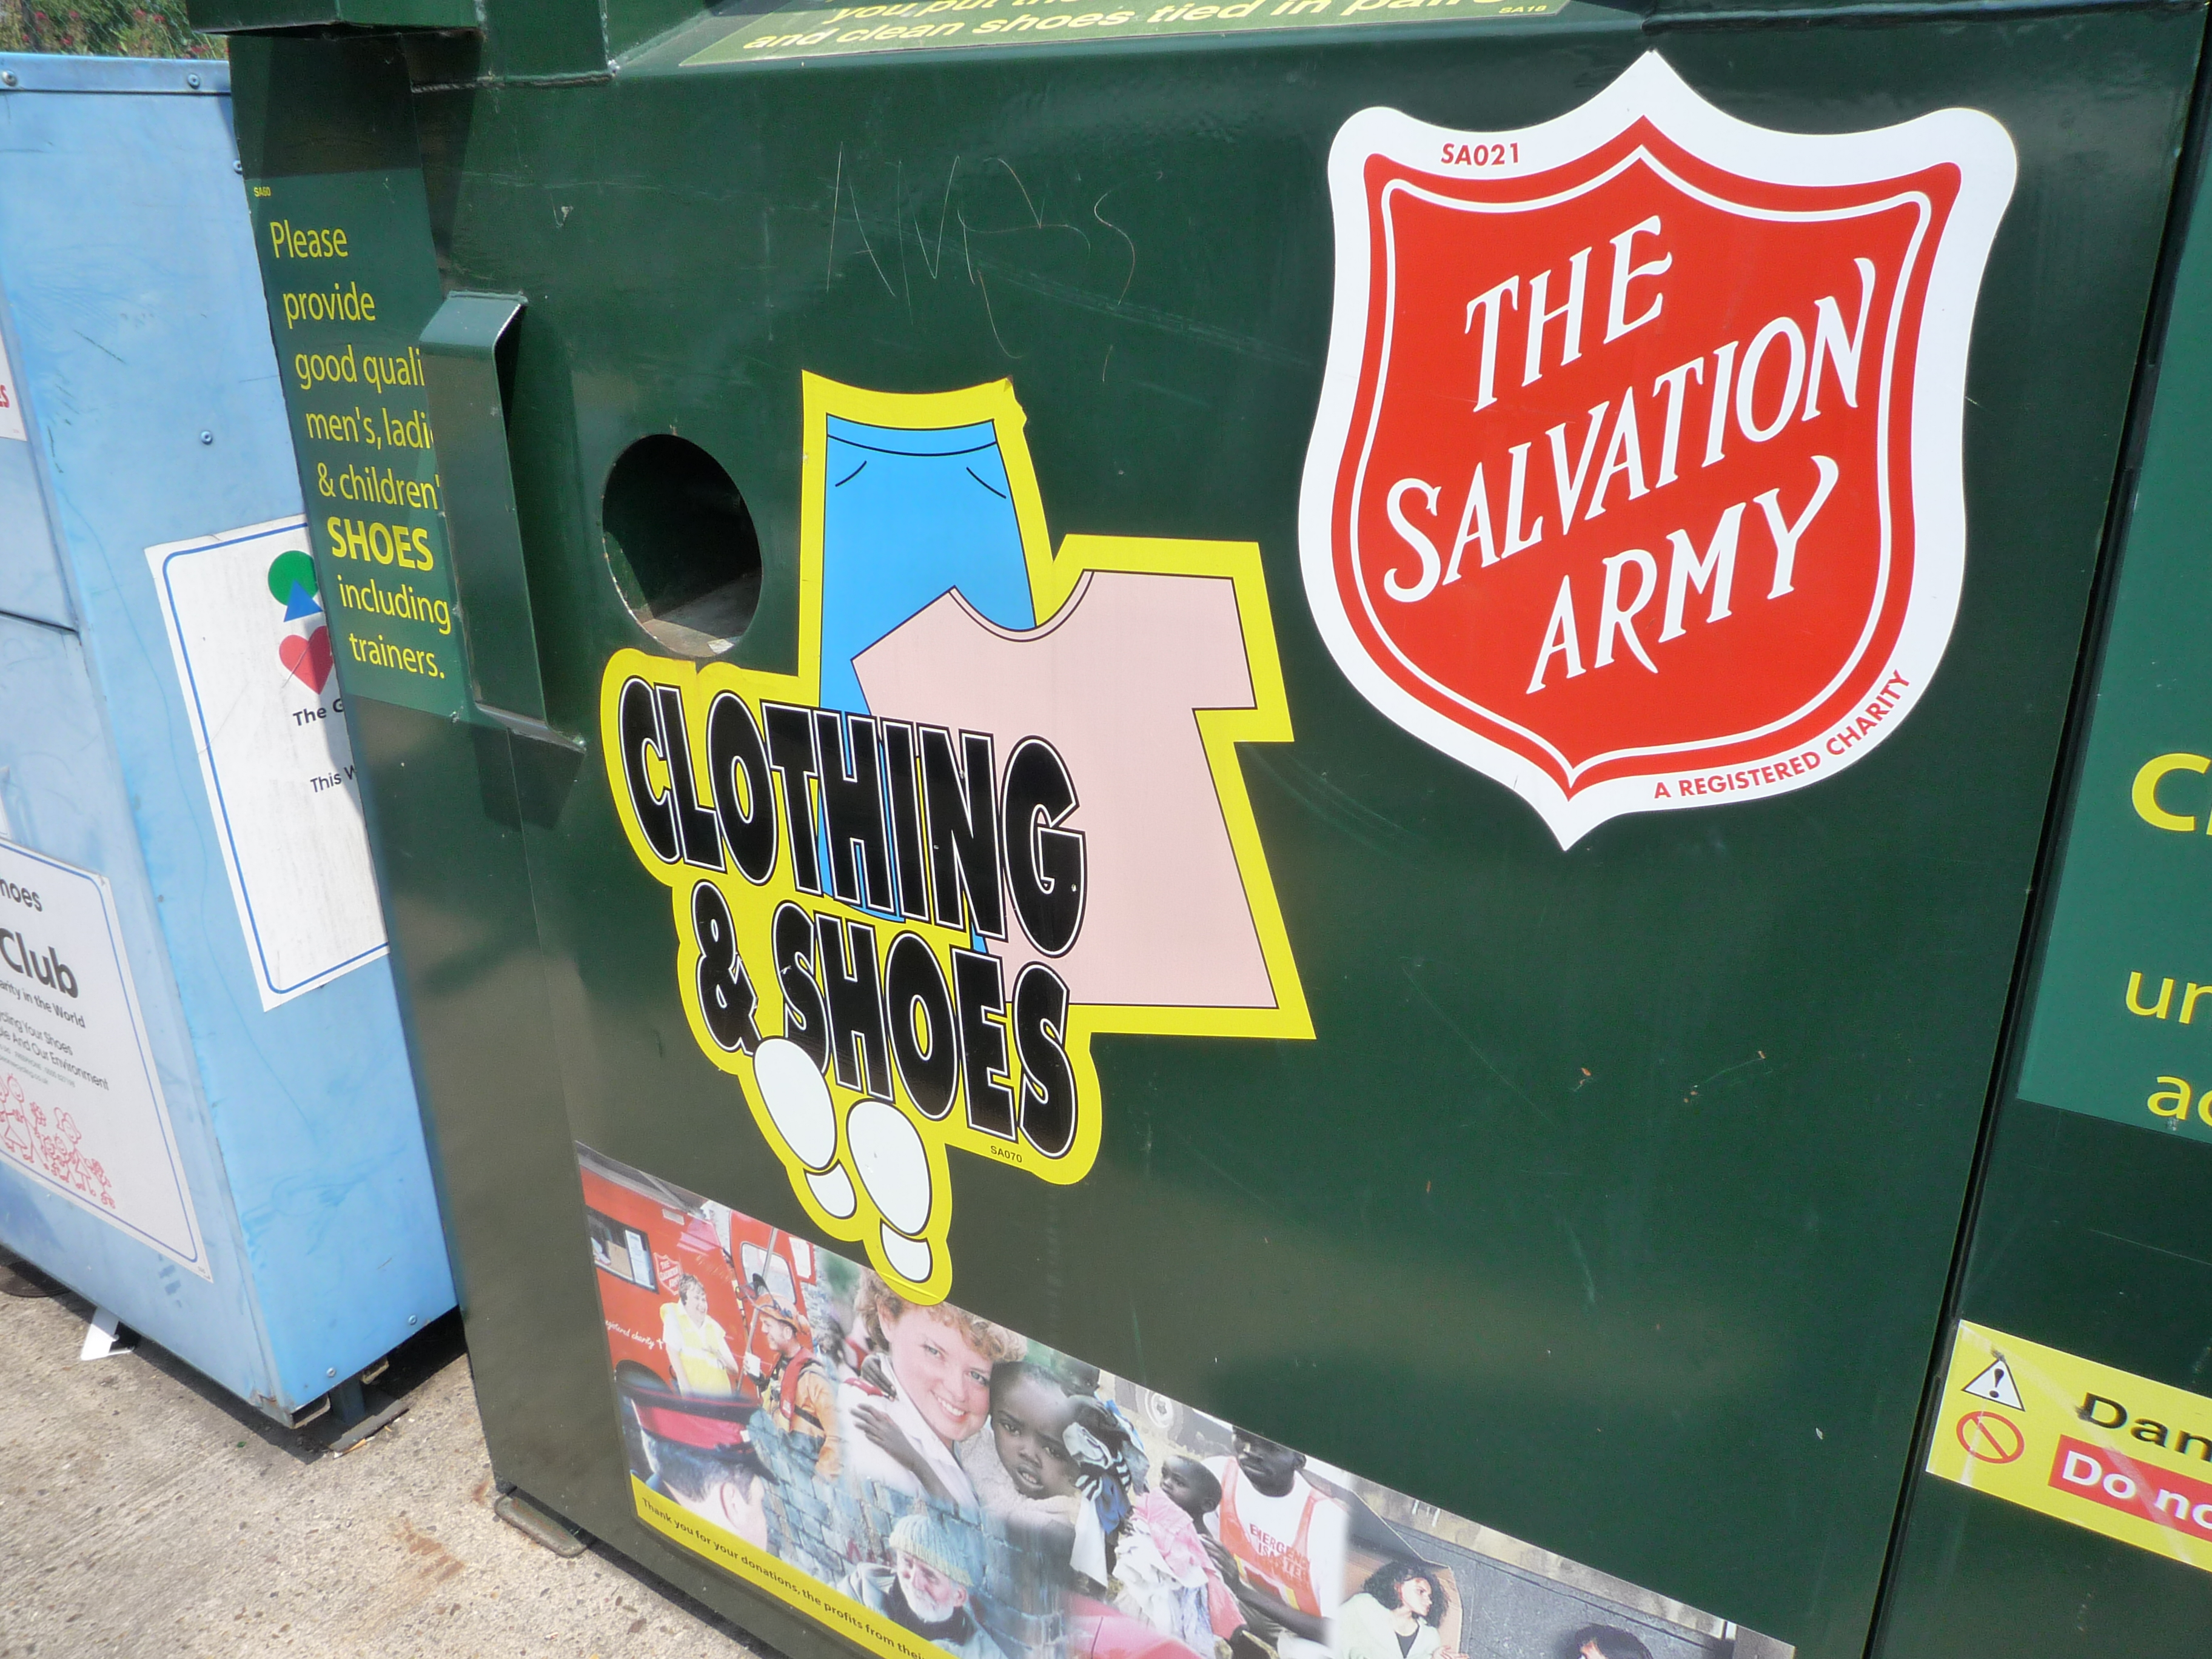 Salvation Army clothing & shoes donation box